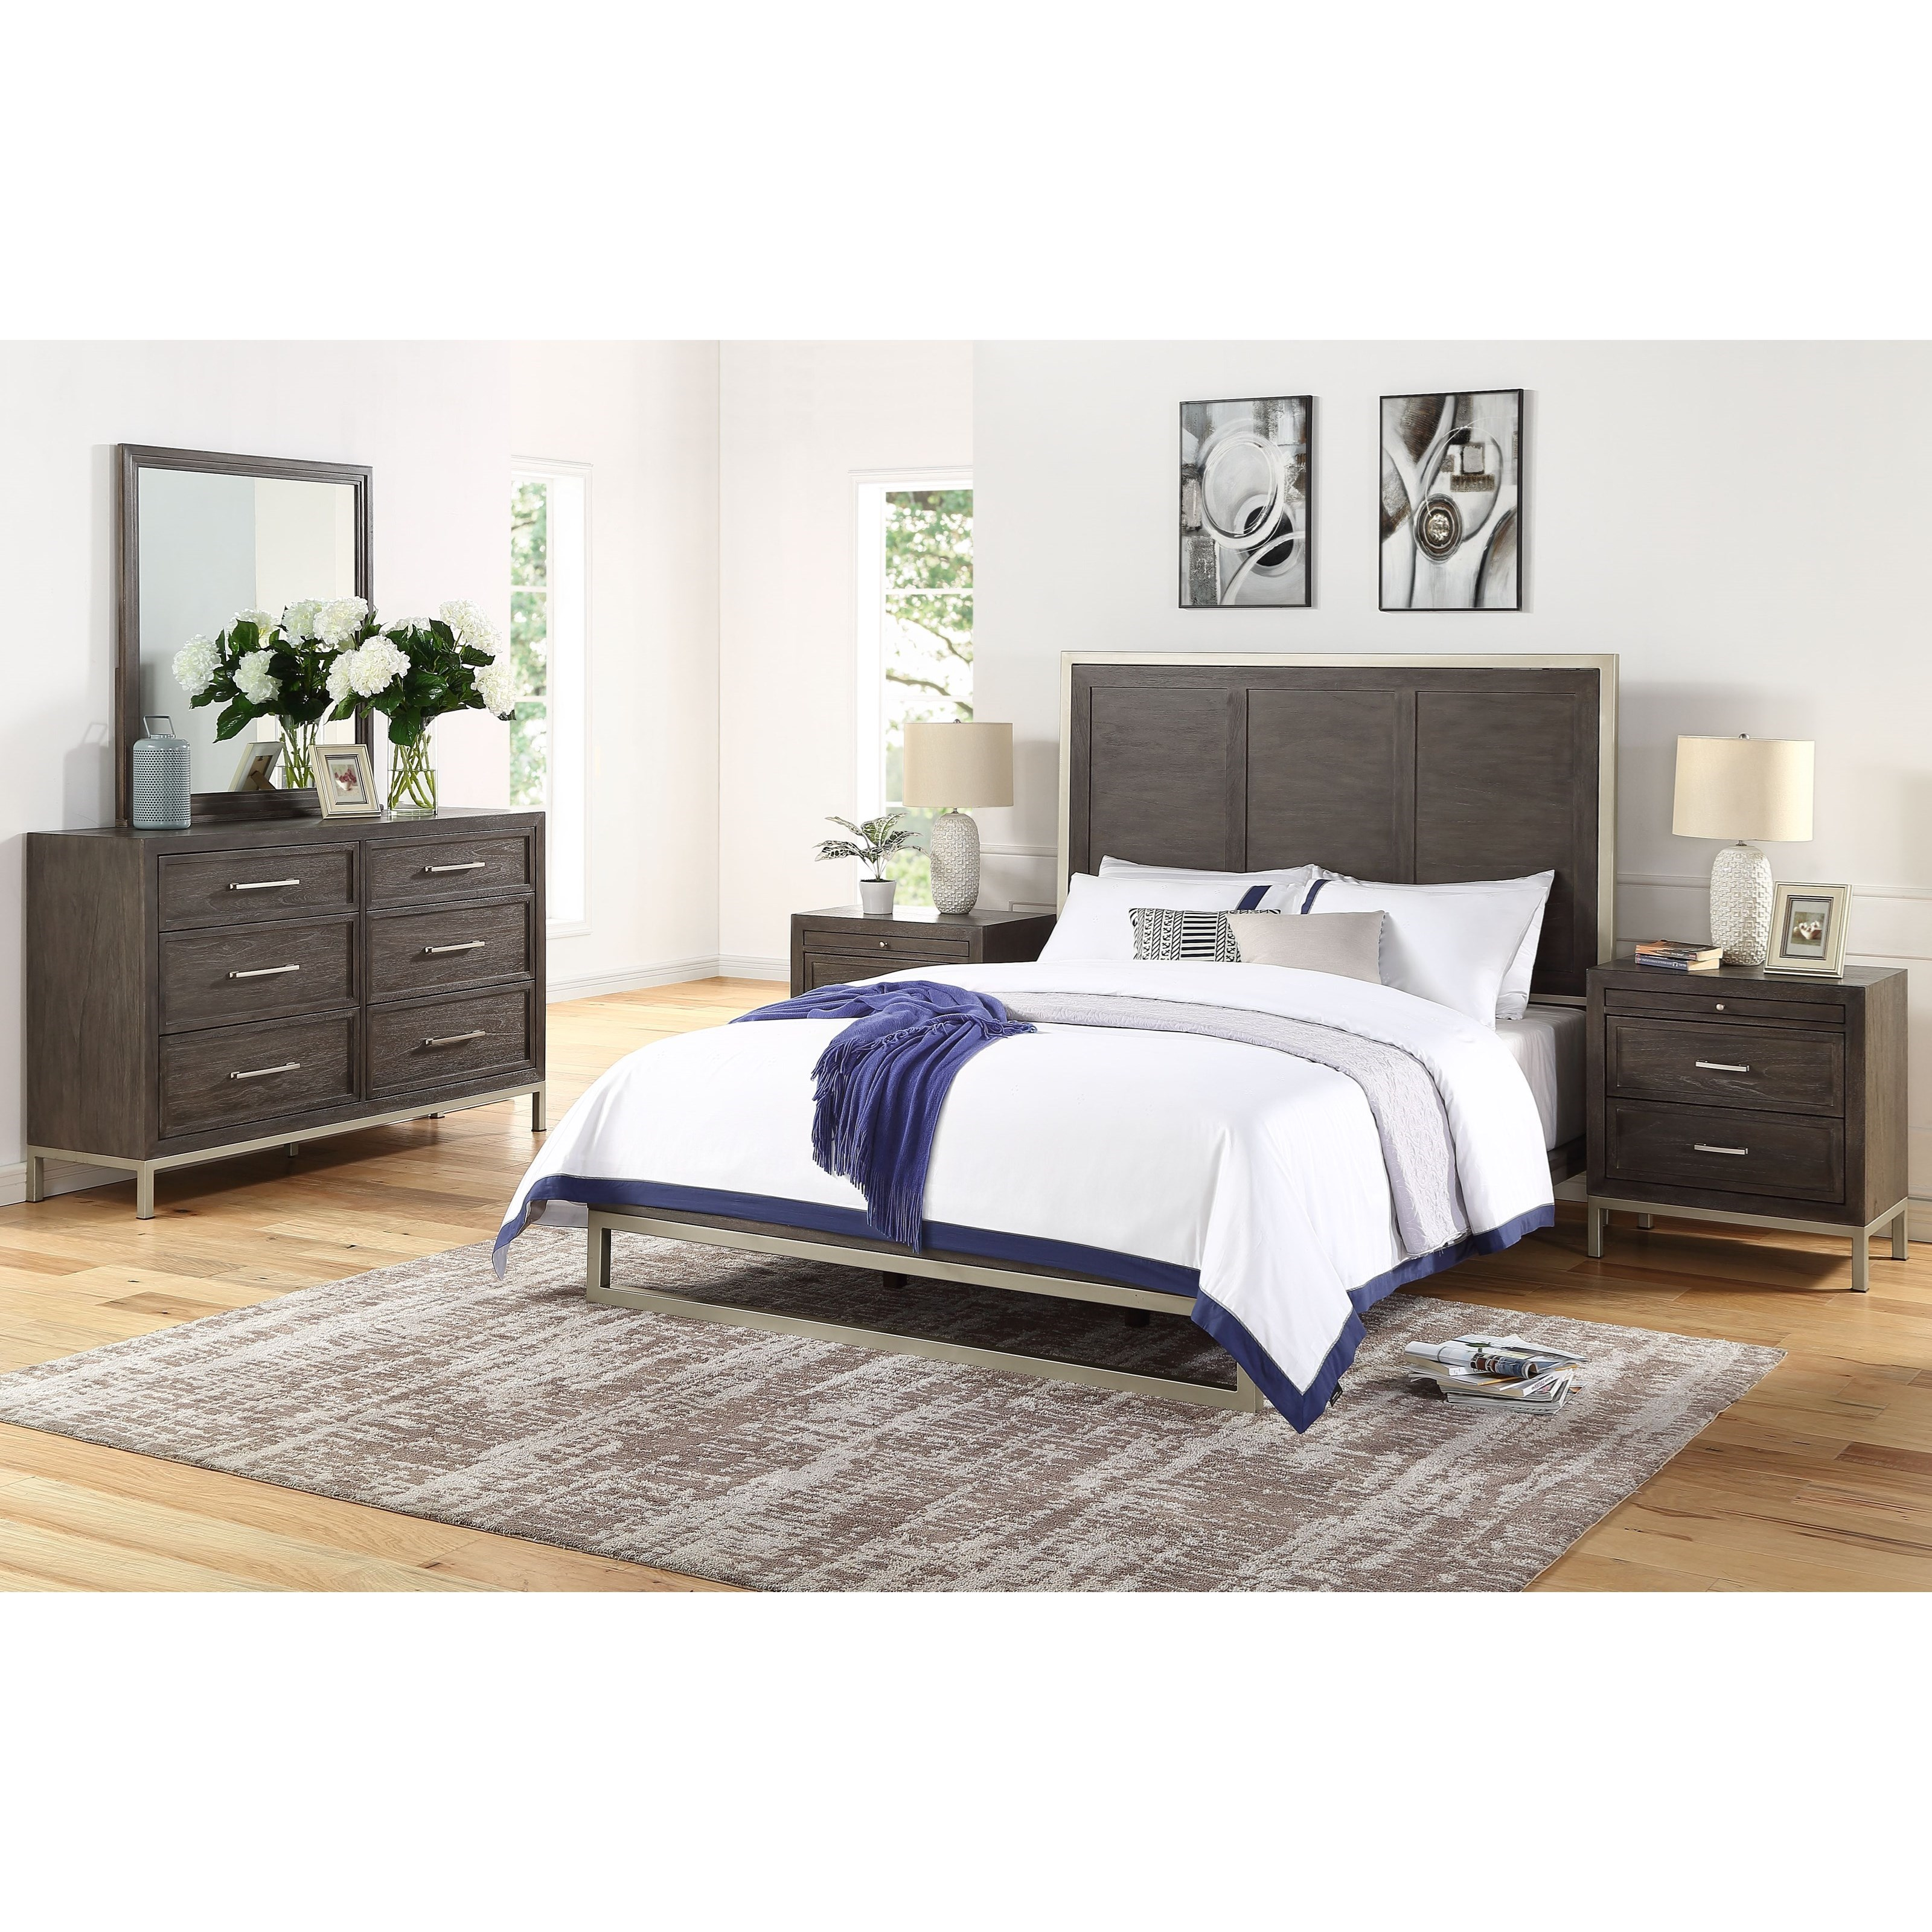 Broomfield King Bedroom Group by Steve Silver at Standard Furniture